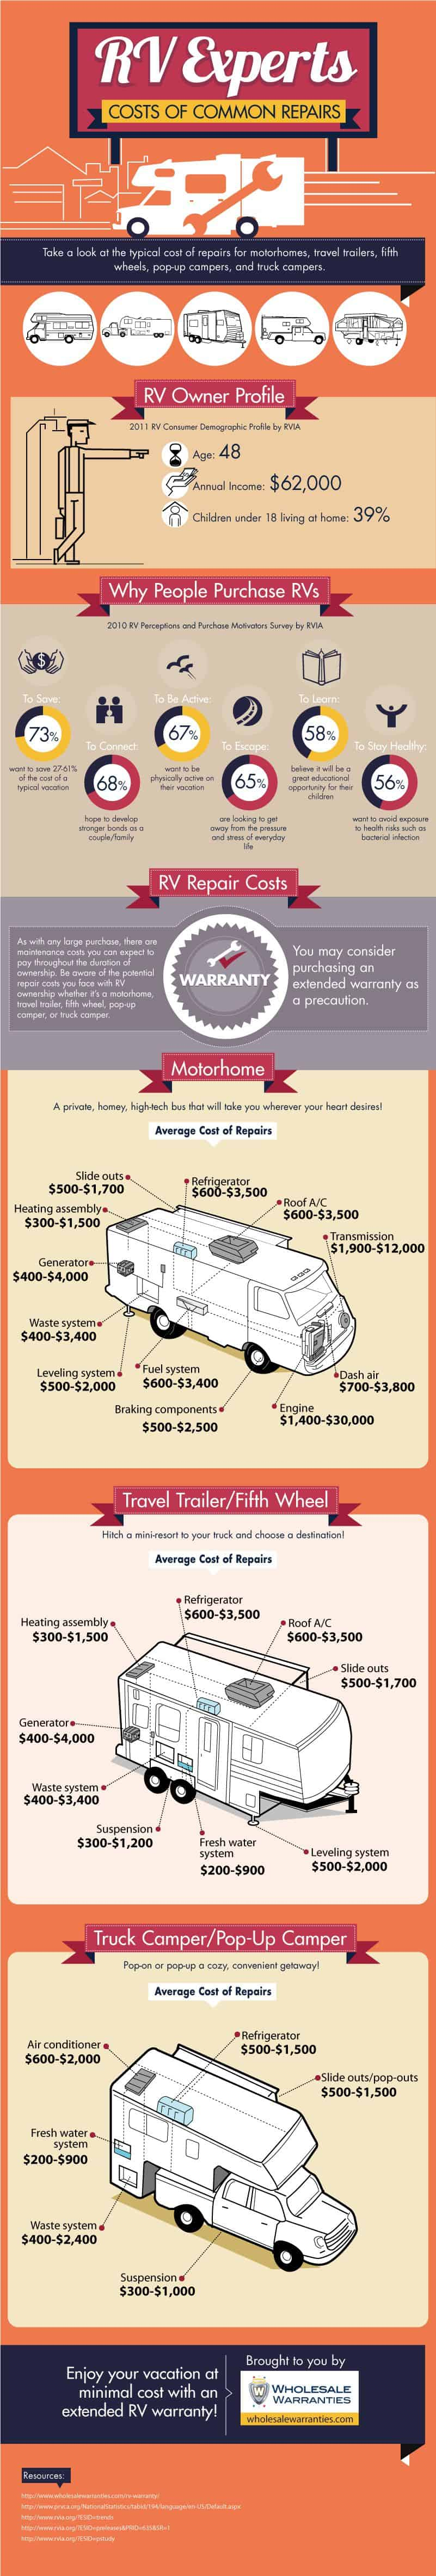 RV Experts: Costs of Common Repairs